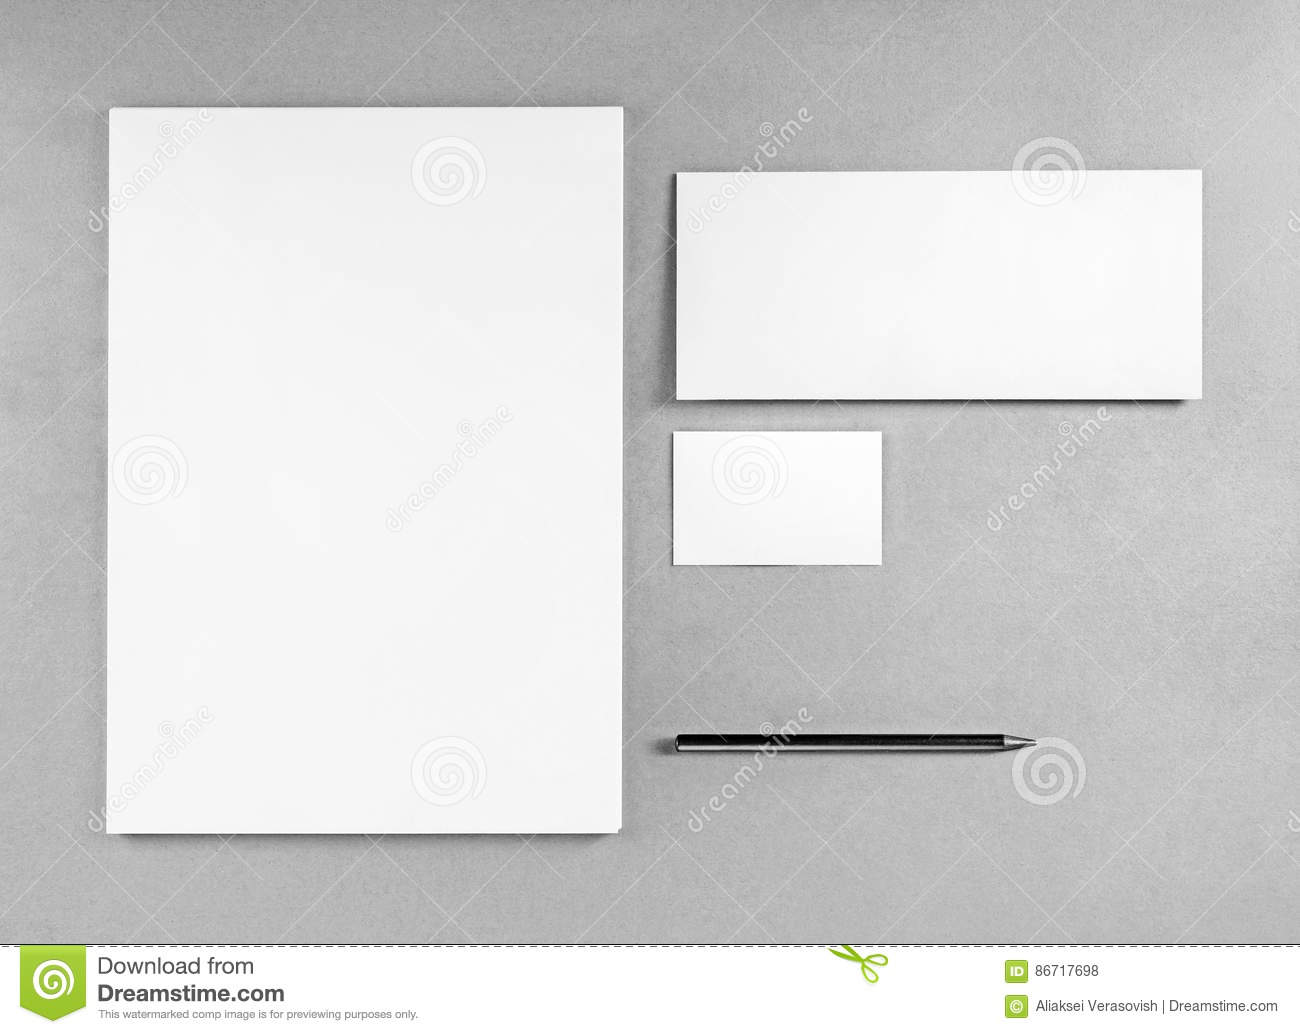 Blank stationery template stock photo image of cardboard 86717698 blank stationery template spiritdancerdesigns Choice Image